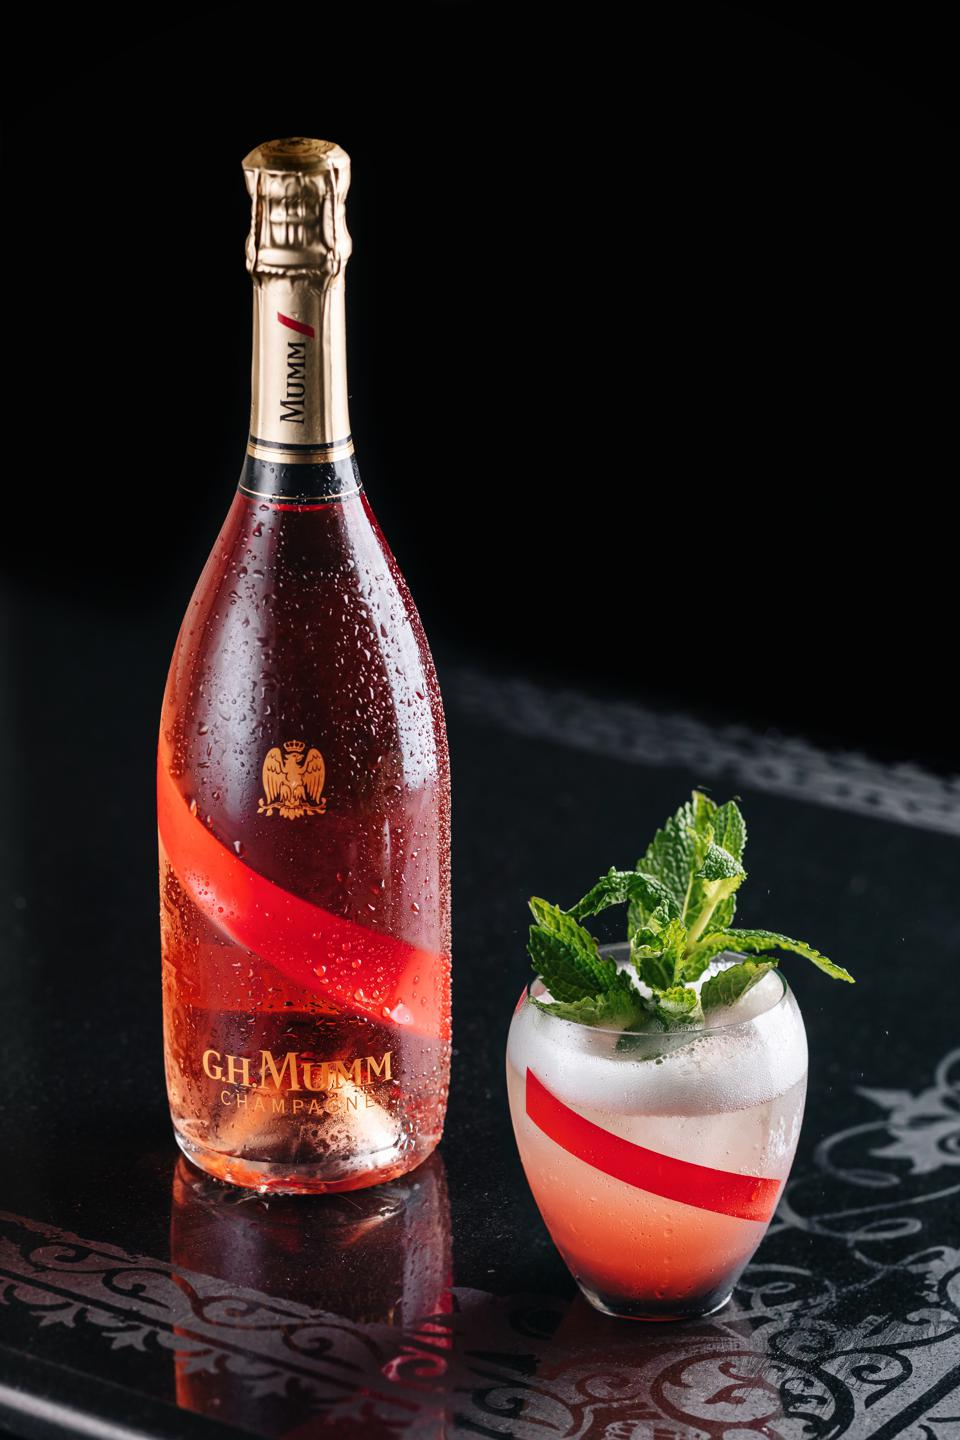 Bottle of G.H. Mumm Grand Cordon Rouge Champagne with sparkling rosé cocktail